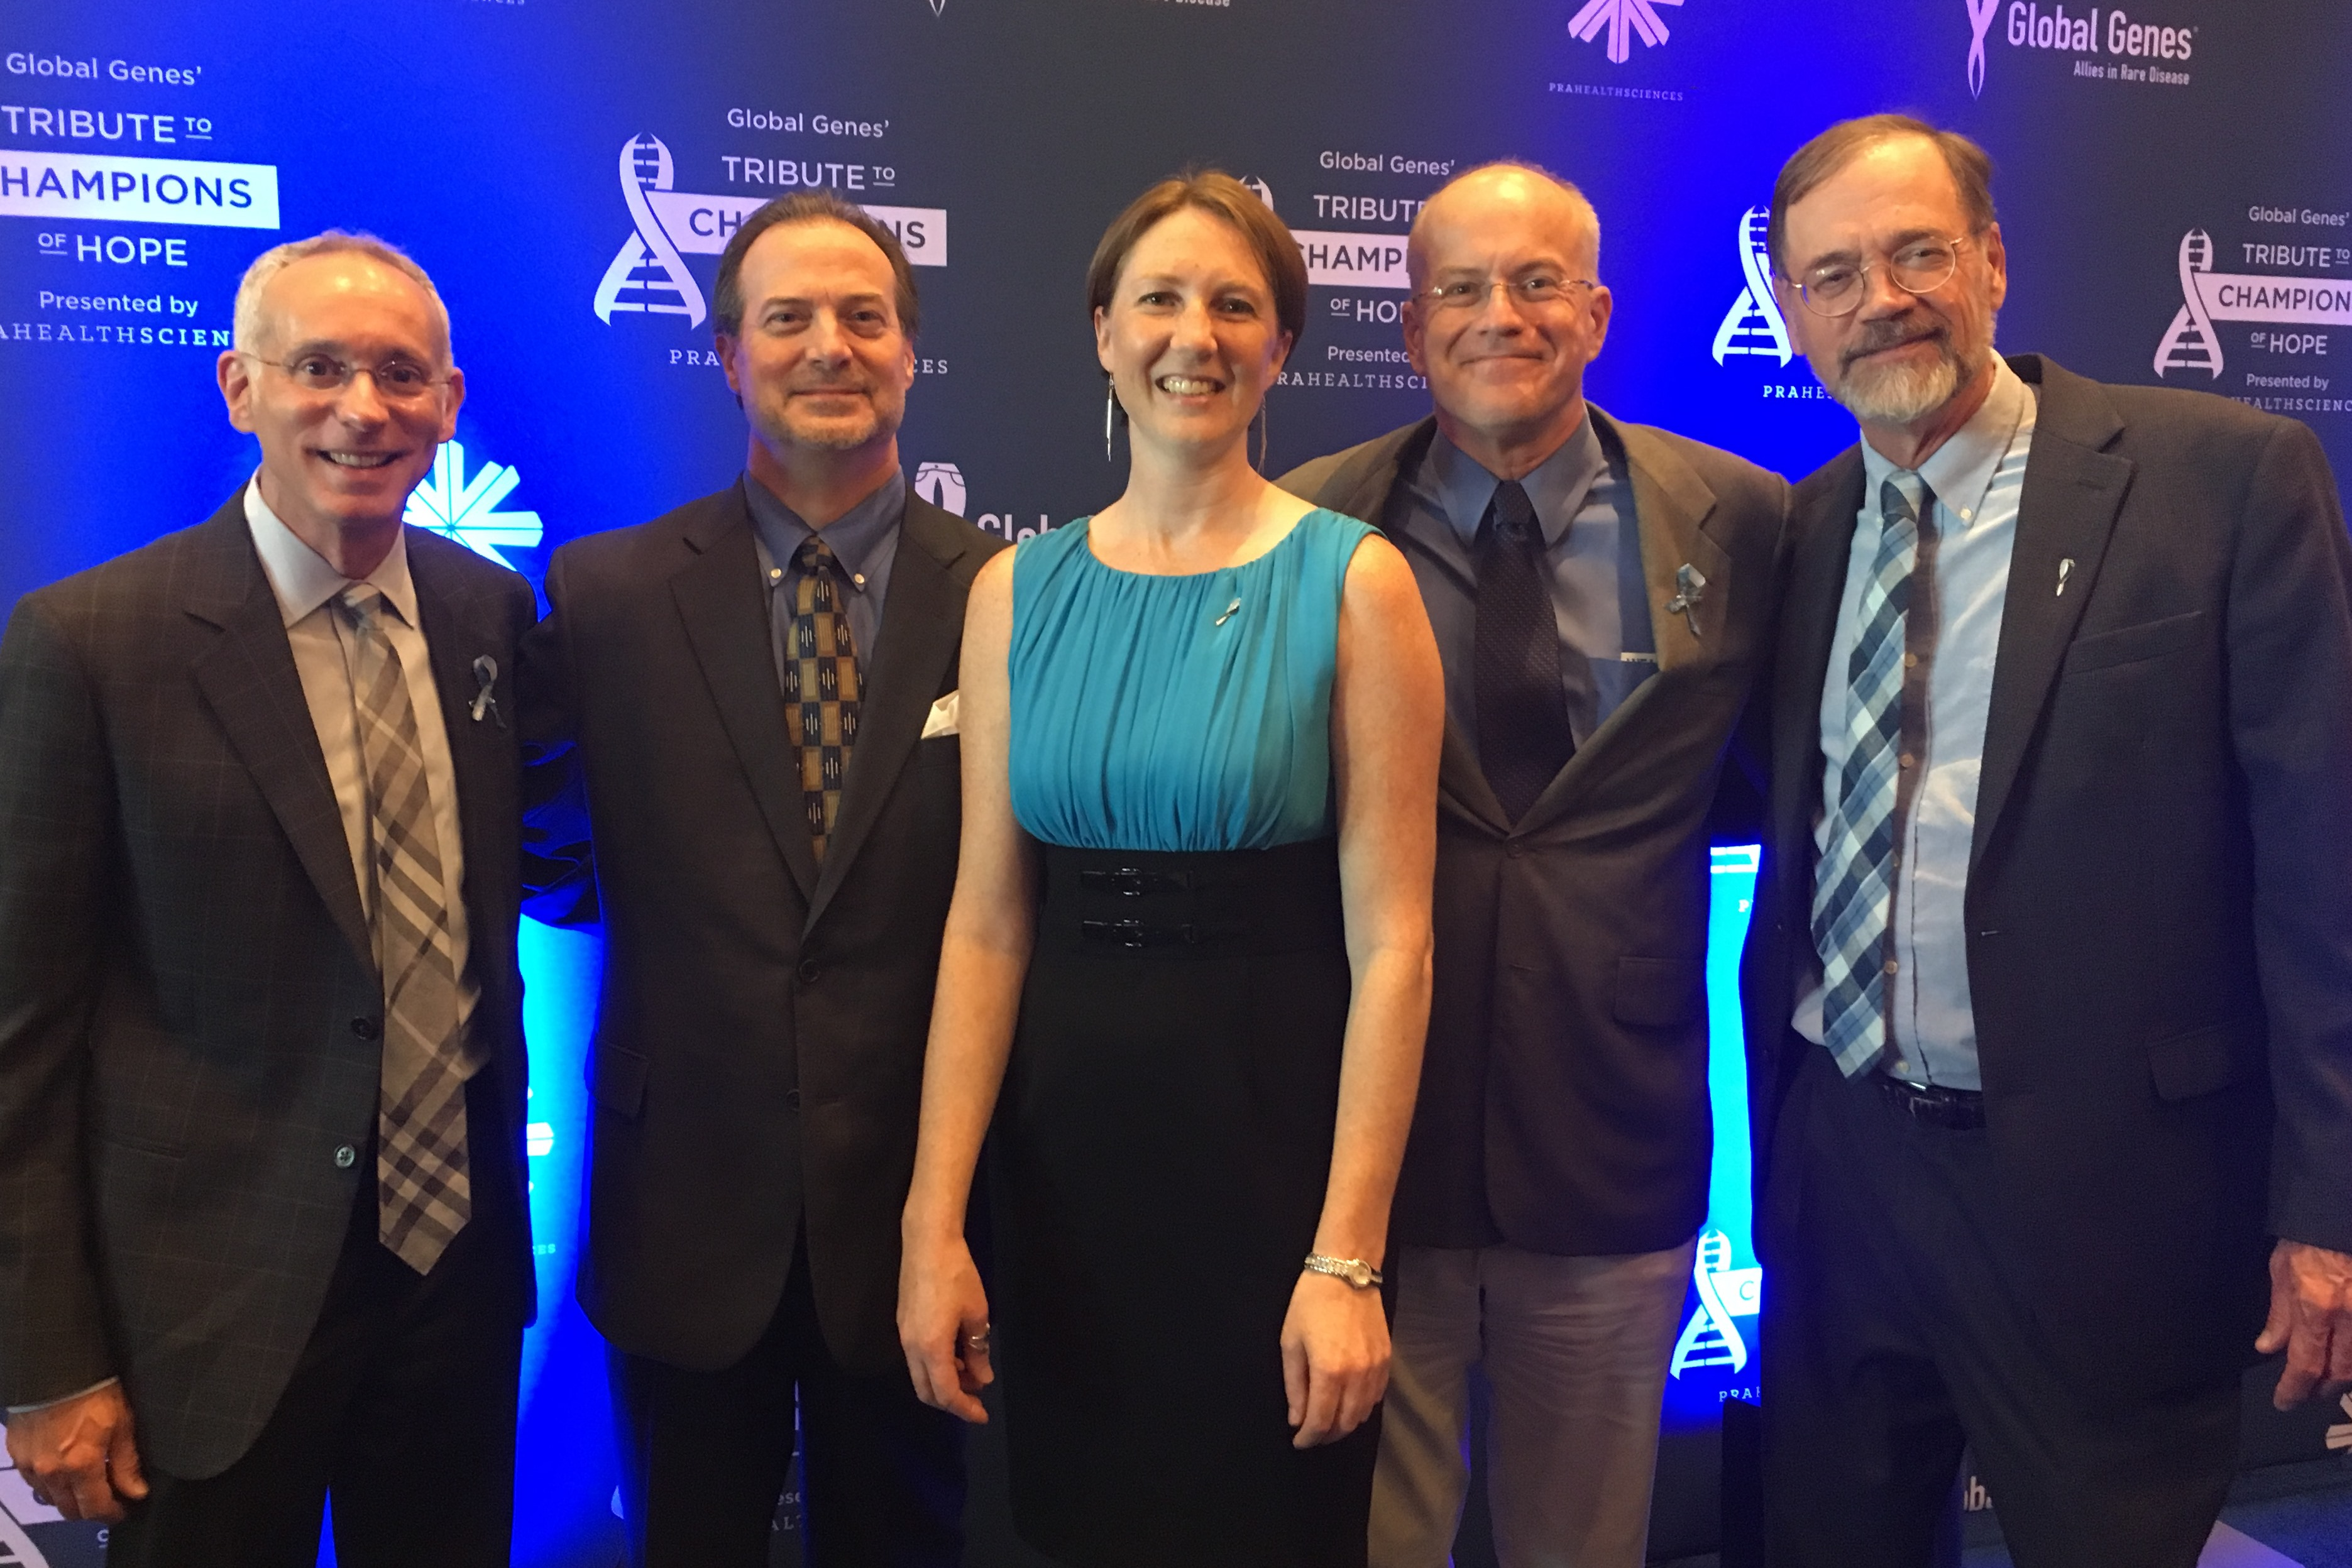 Dr. Dan Ory of WashU, Phil Marella of DART, Dr. Cristin Davidson of the NIH, Dr. Charles Vite of the University of Pennsylvania and Dr. Steve Walkley of Albert Einstein College of Medicine at the Global Genes Gala